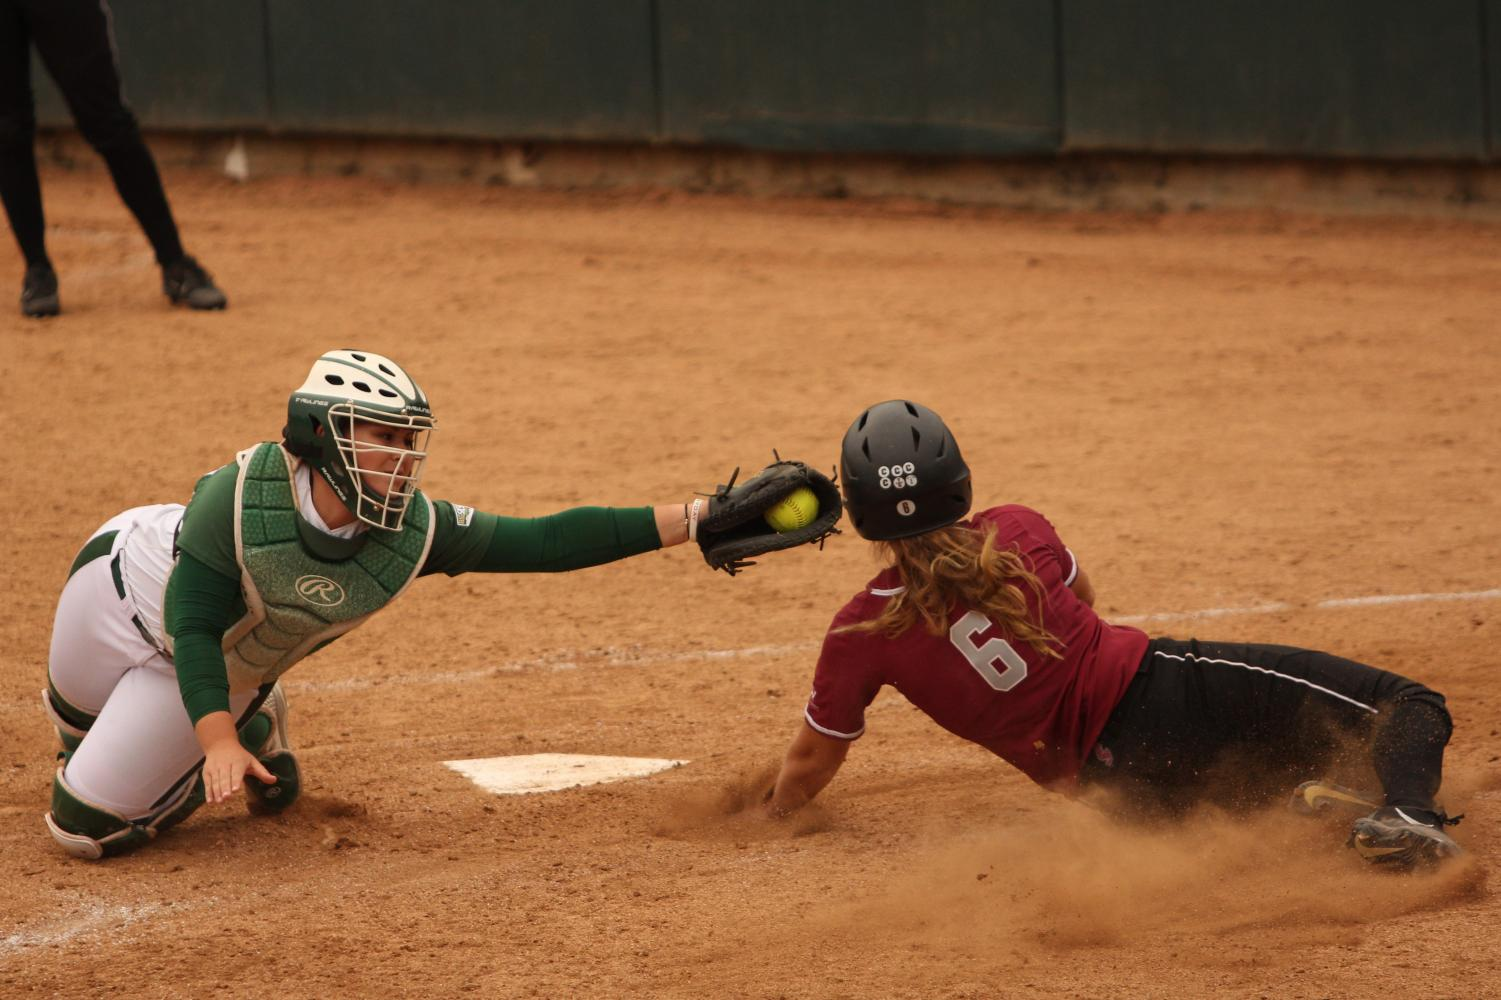 Sacramento State sophomore catcher Jessica Scott tags out Santa Clara University junior second baseman Kelsie Barnard at home plate at Shea Stadium on Wednesday, April 11, 2018. The Hornets defeated the Broncos 3-1.